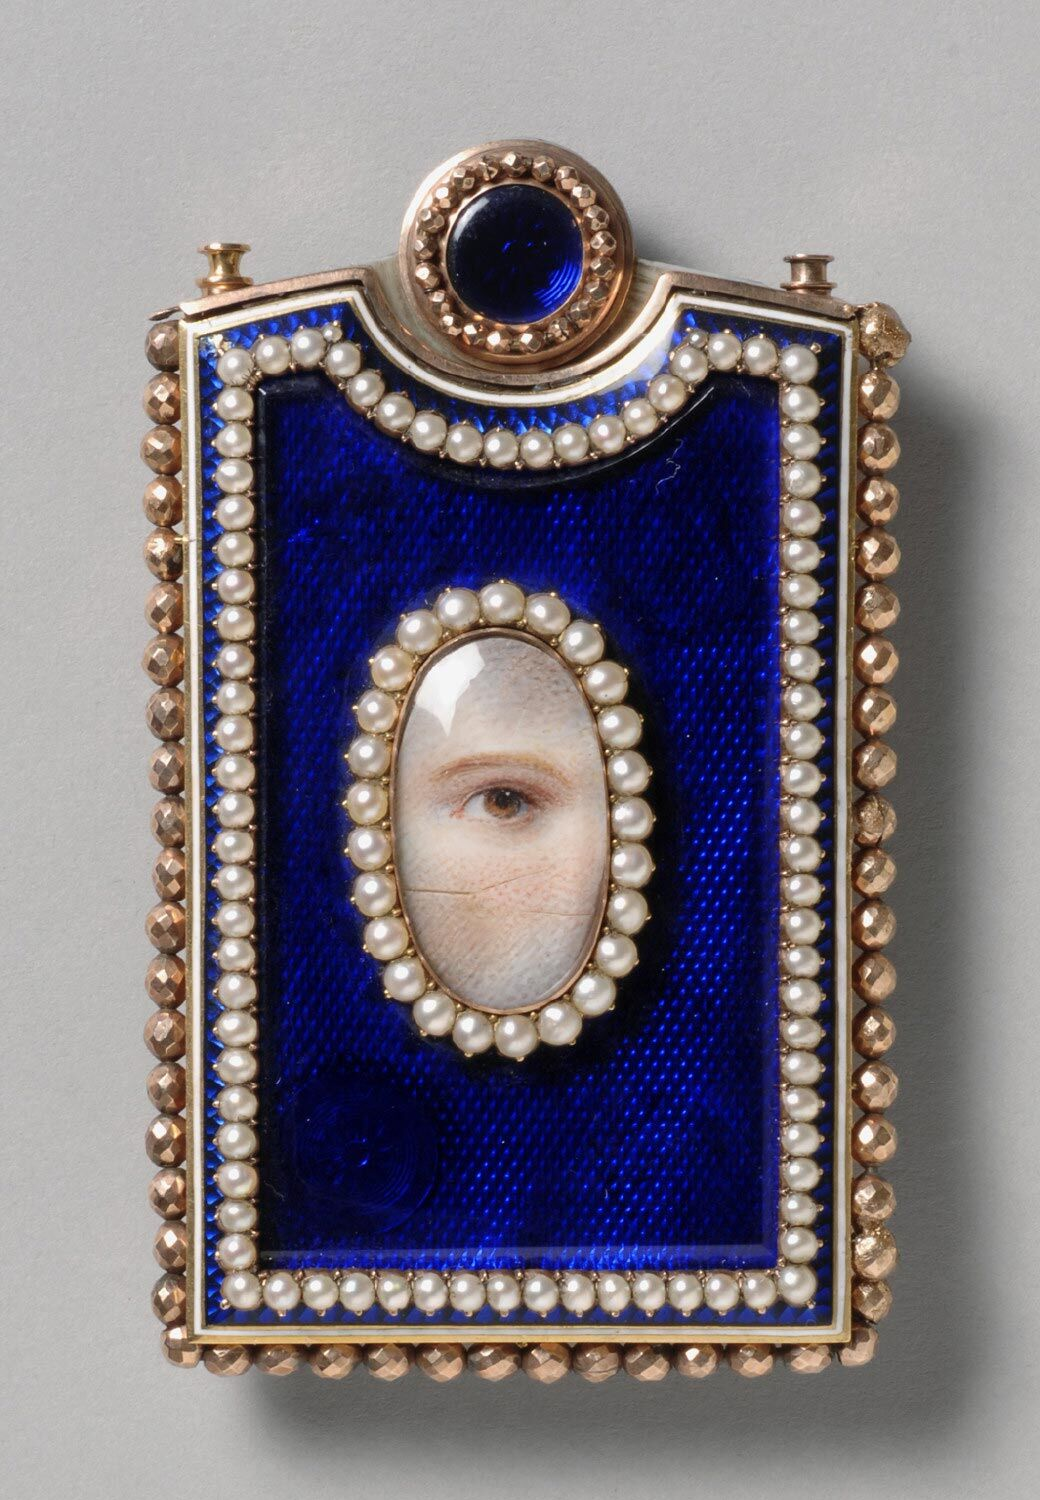 Memorandum Case with a Portrait of a Women's Left Eye. Courtesy of the Philadelphia Museum of Art.